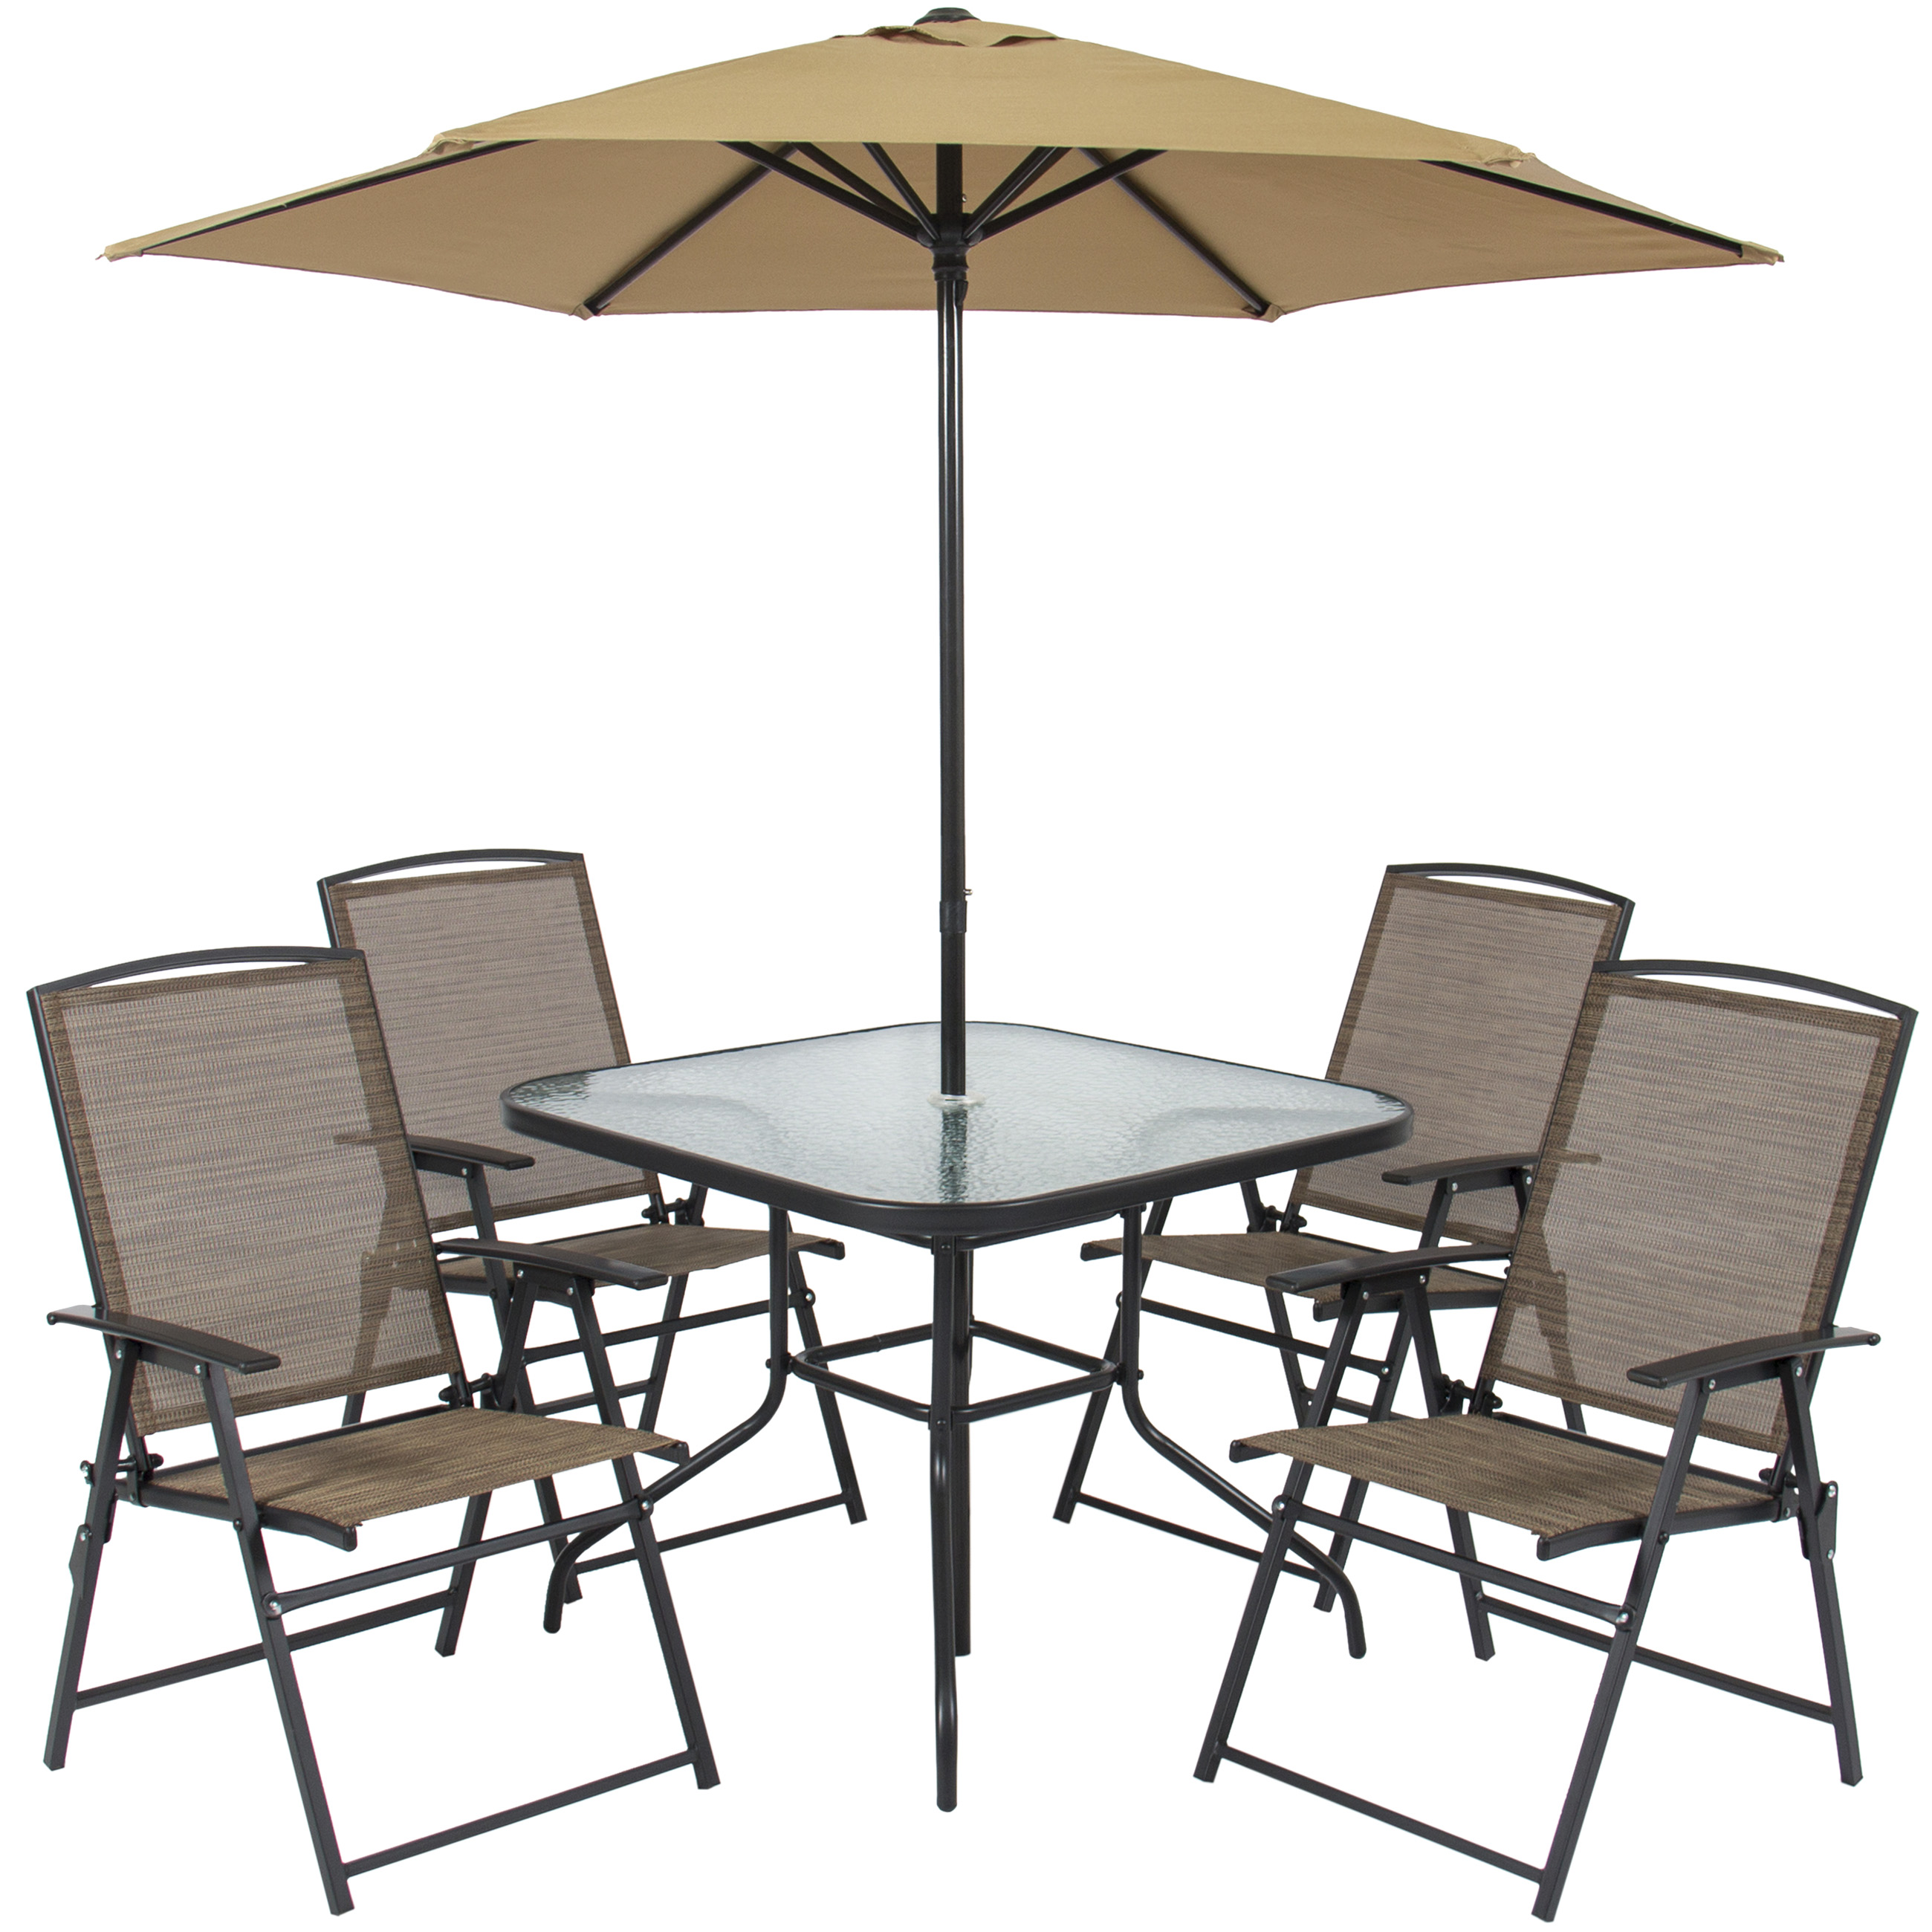 Best Choice Products 6pc Outdoor Folding Patio Dining Set W/ Table, 4 Chairs ,